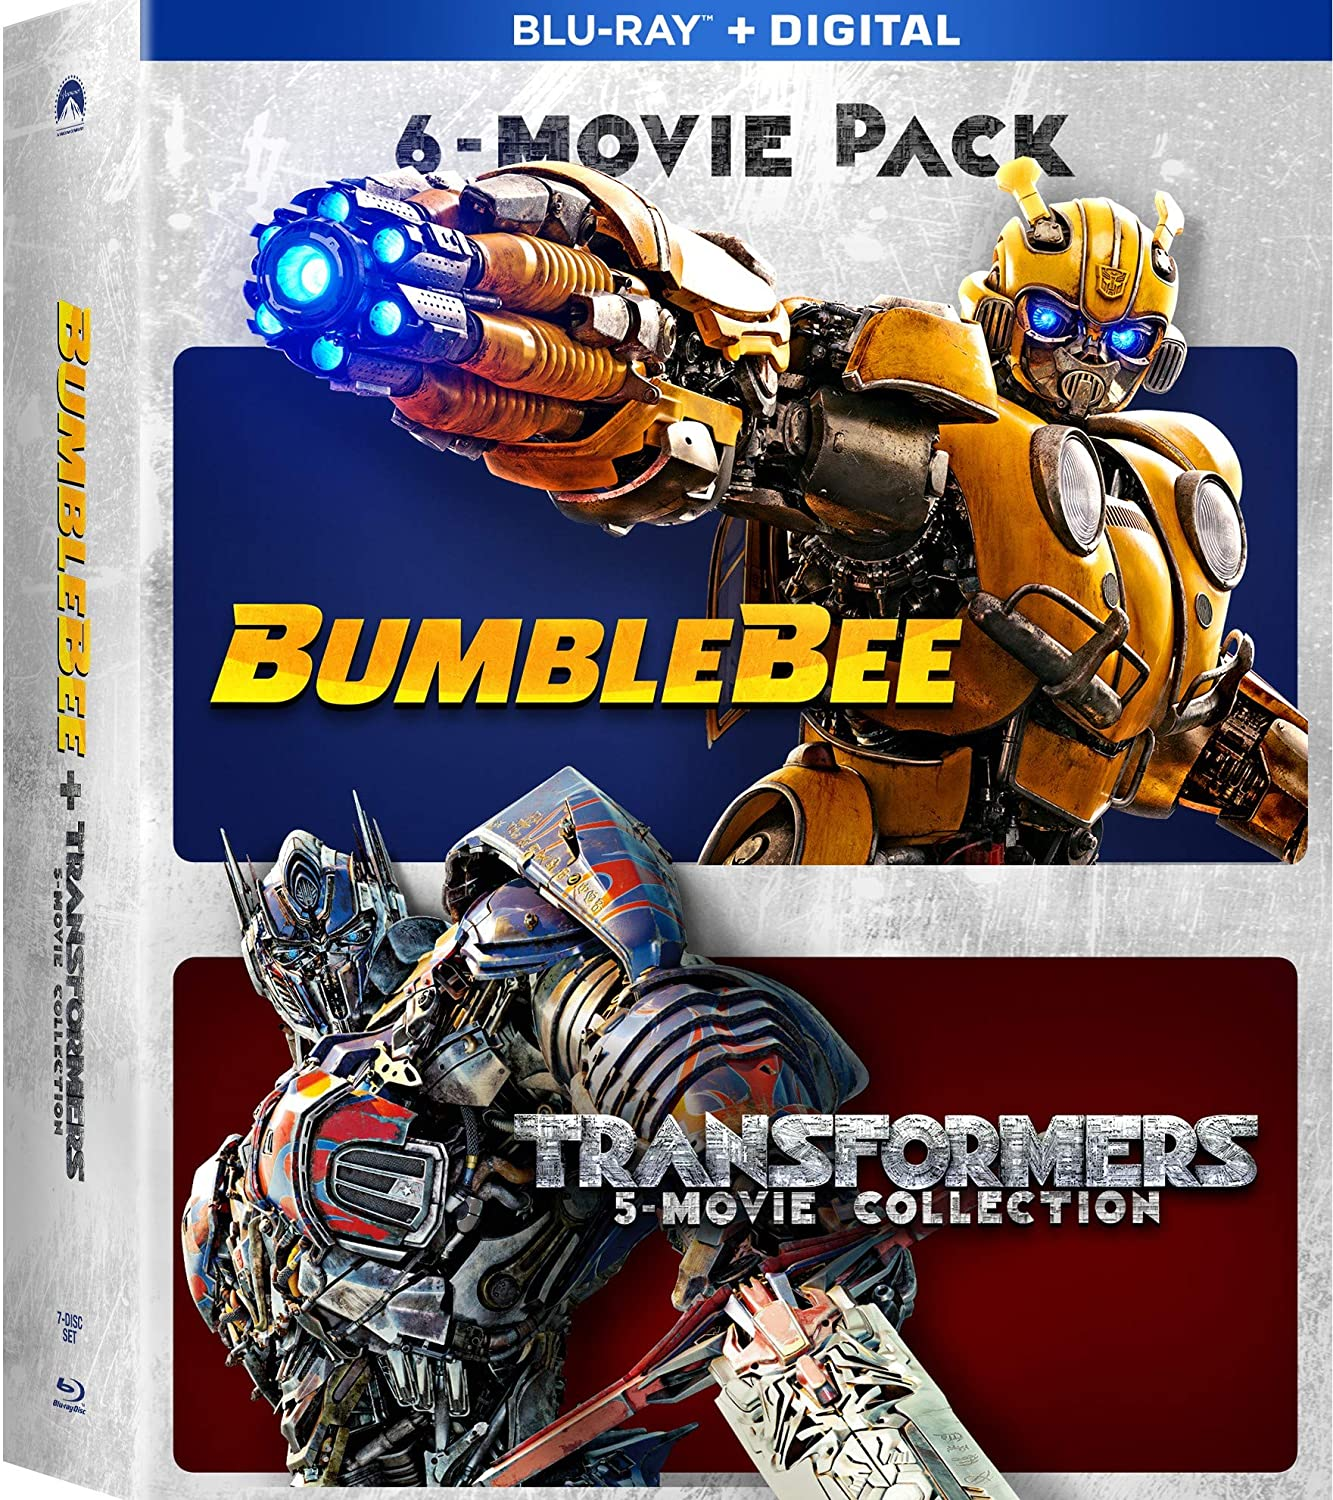 Amazon.com: Bumblebee & Transformers Ultimate 6-Movie Collection ...